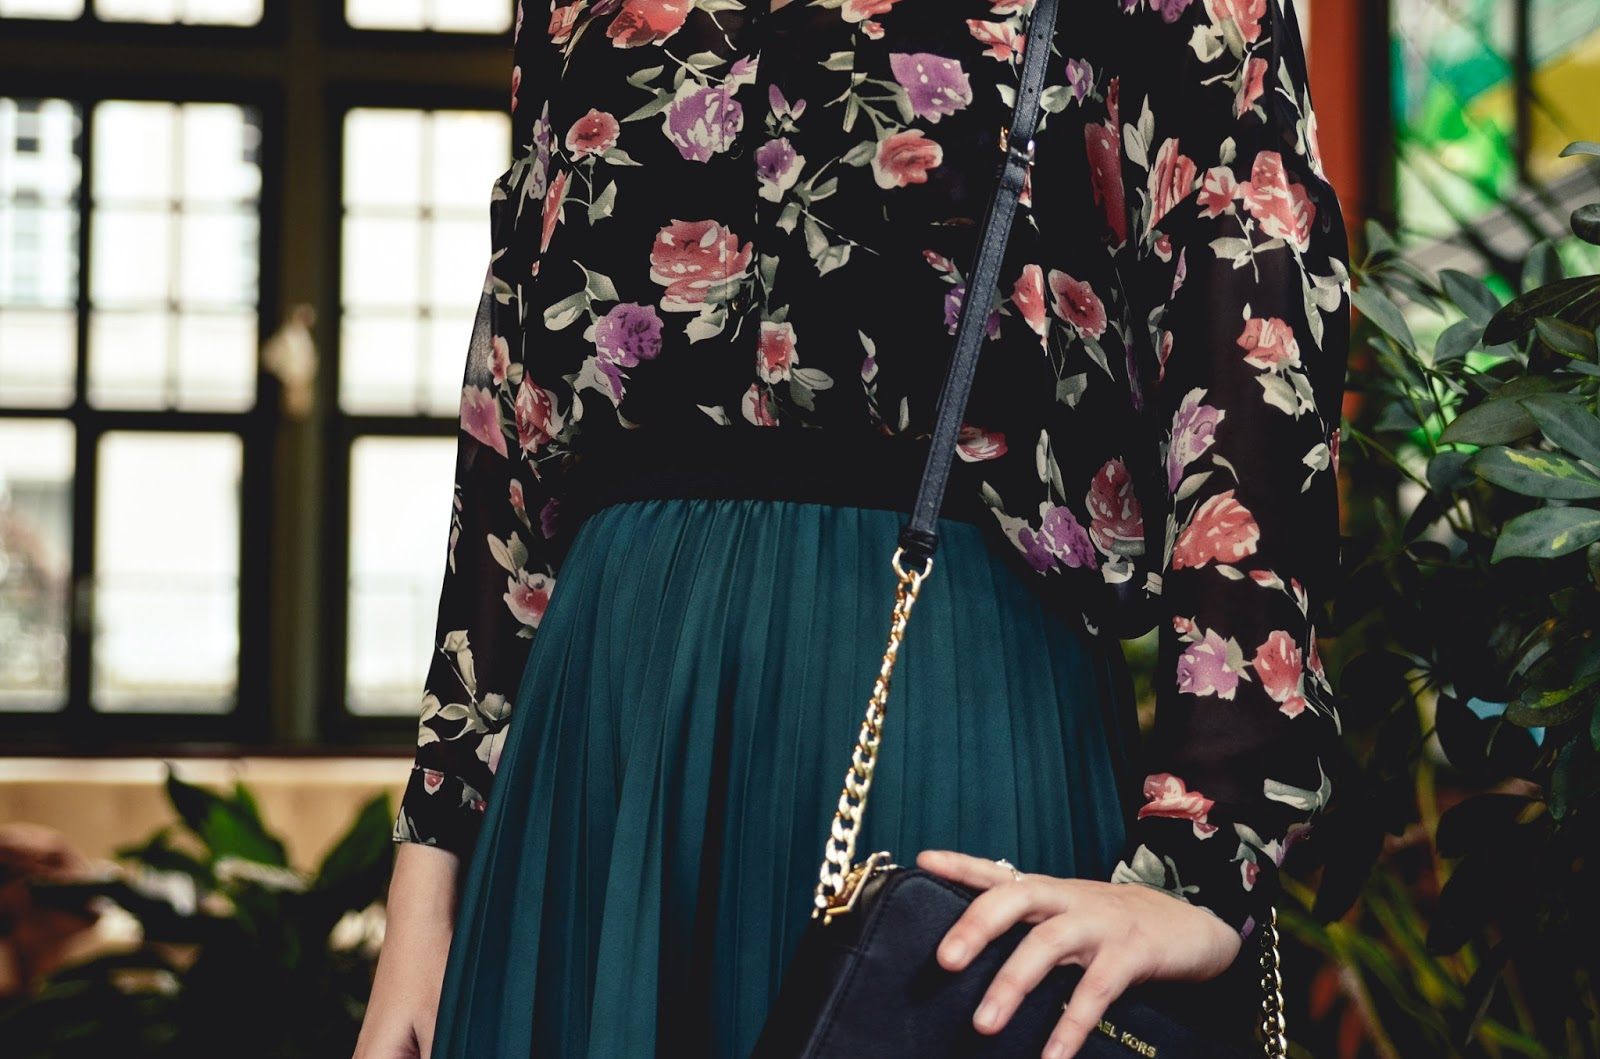 Bottle green frilly skirt, Michael Kors Bag, Flowery shirt, camel coat